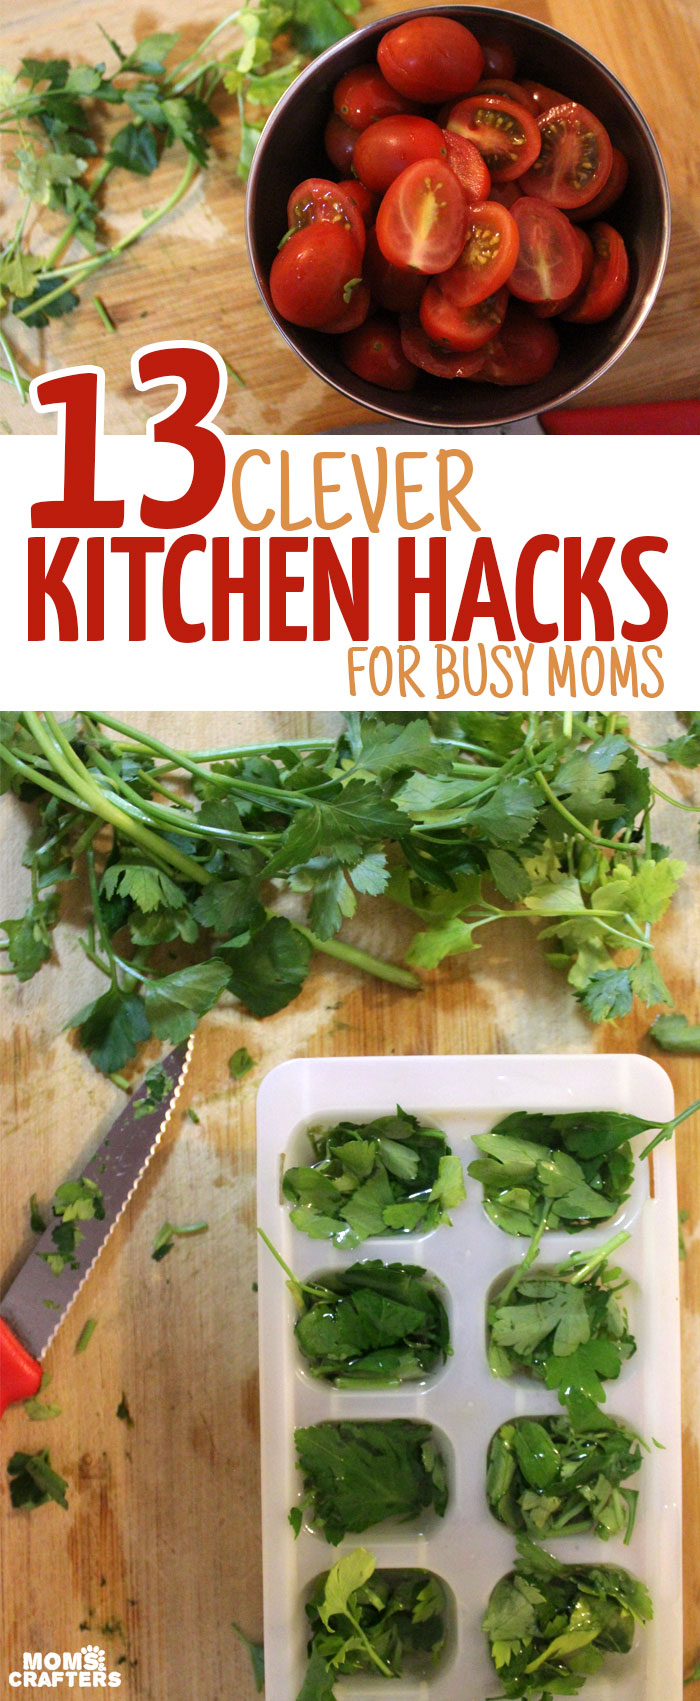 13 Clever Kitchen Hacks for Busy Moms - okay, you don't need to be a mom for all of these life tips to be relevant, but a lot will also really help in families with kids. These life hacks are so genius - it will make your cooking much easier!